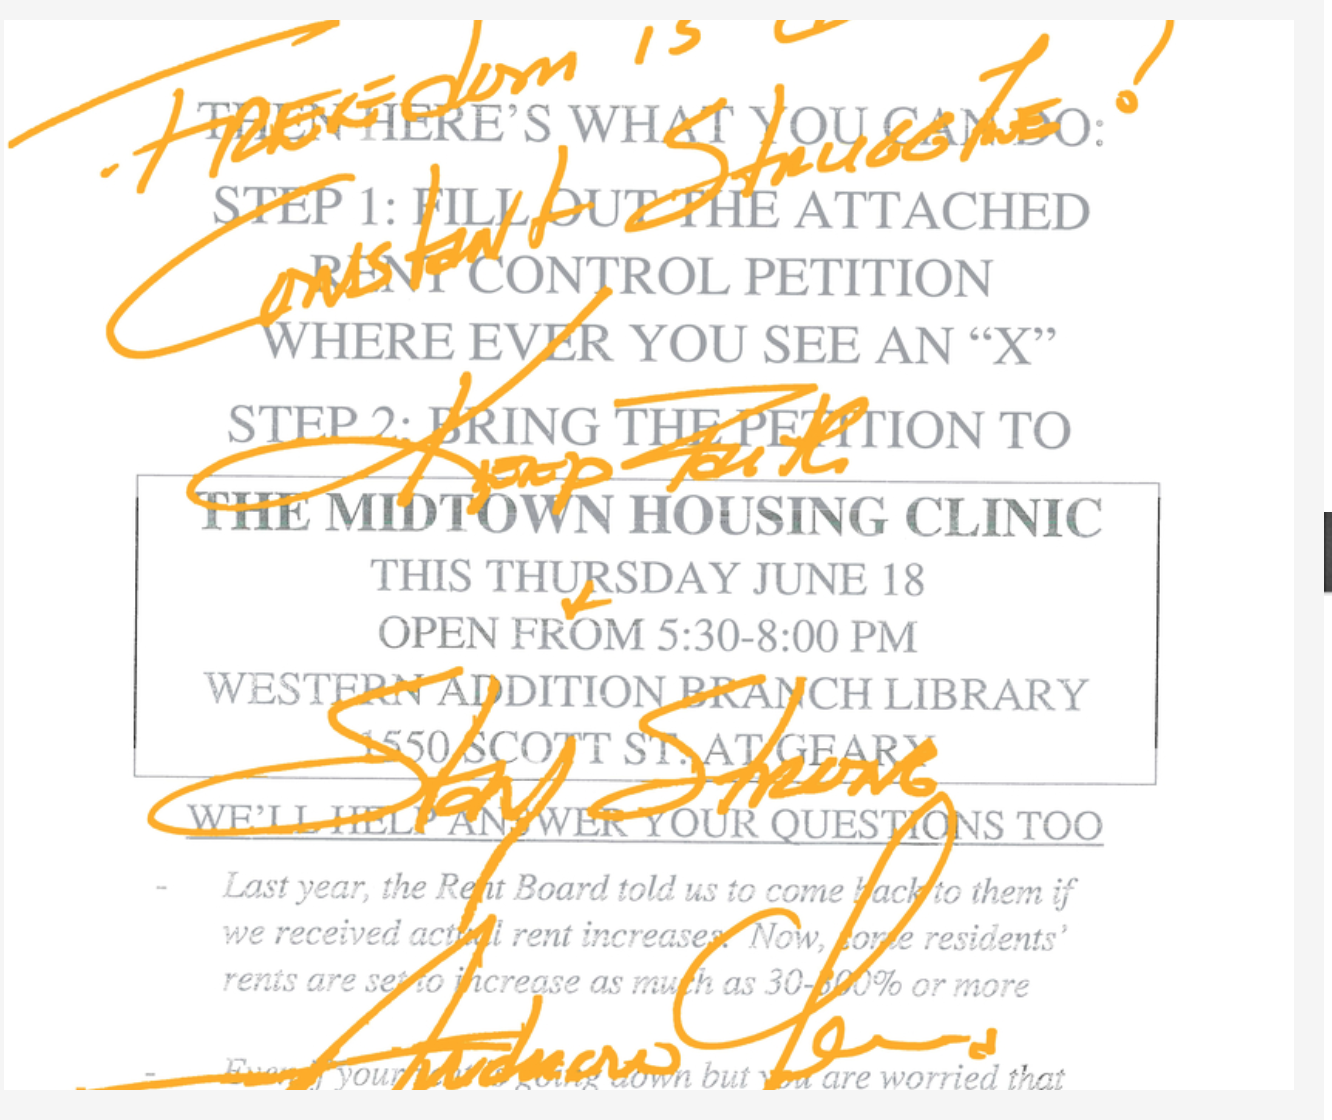 Freedom-is-a-constant-struggle-Keep-faith-stay-strong-Andrew-Young-handwritten-note-to-Midtown-residents, Fillmore Midtown residents: Righting the wrongs of racist urban renewal, Local News & Views